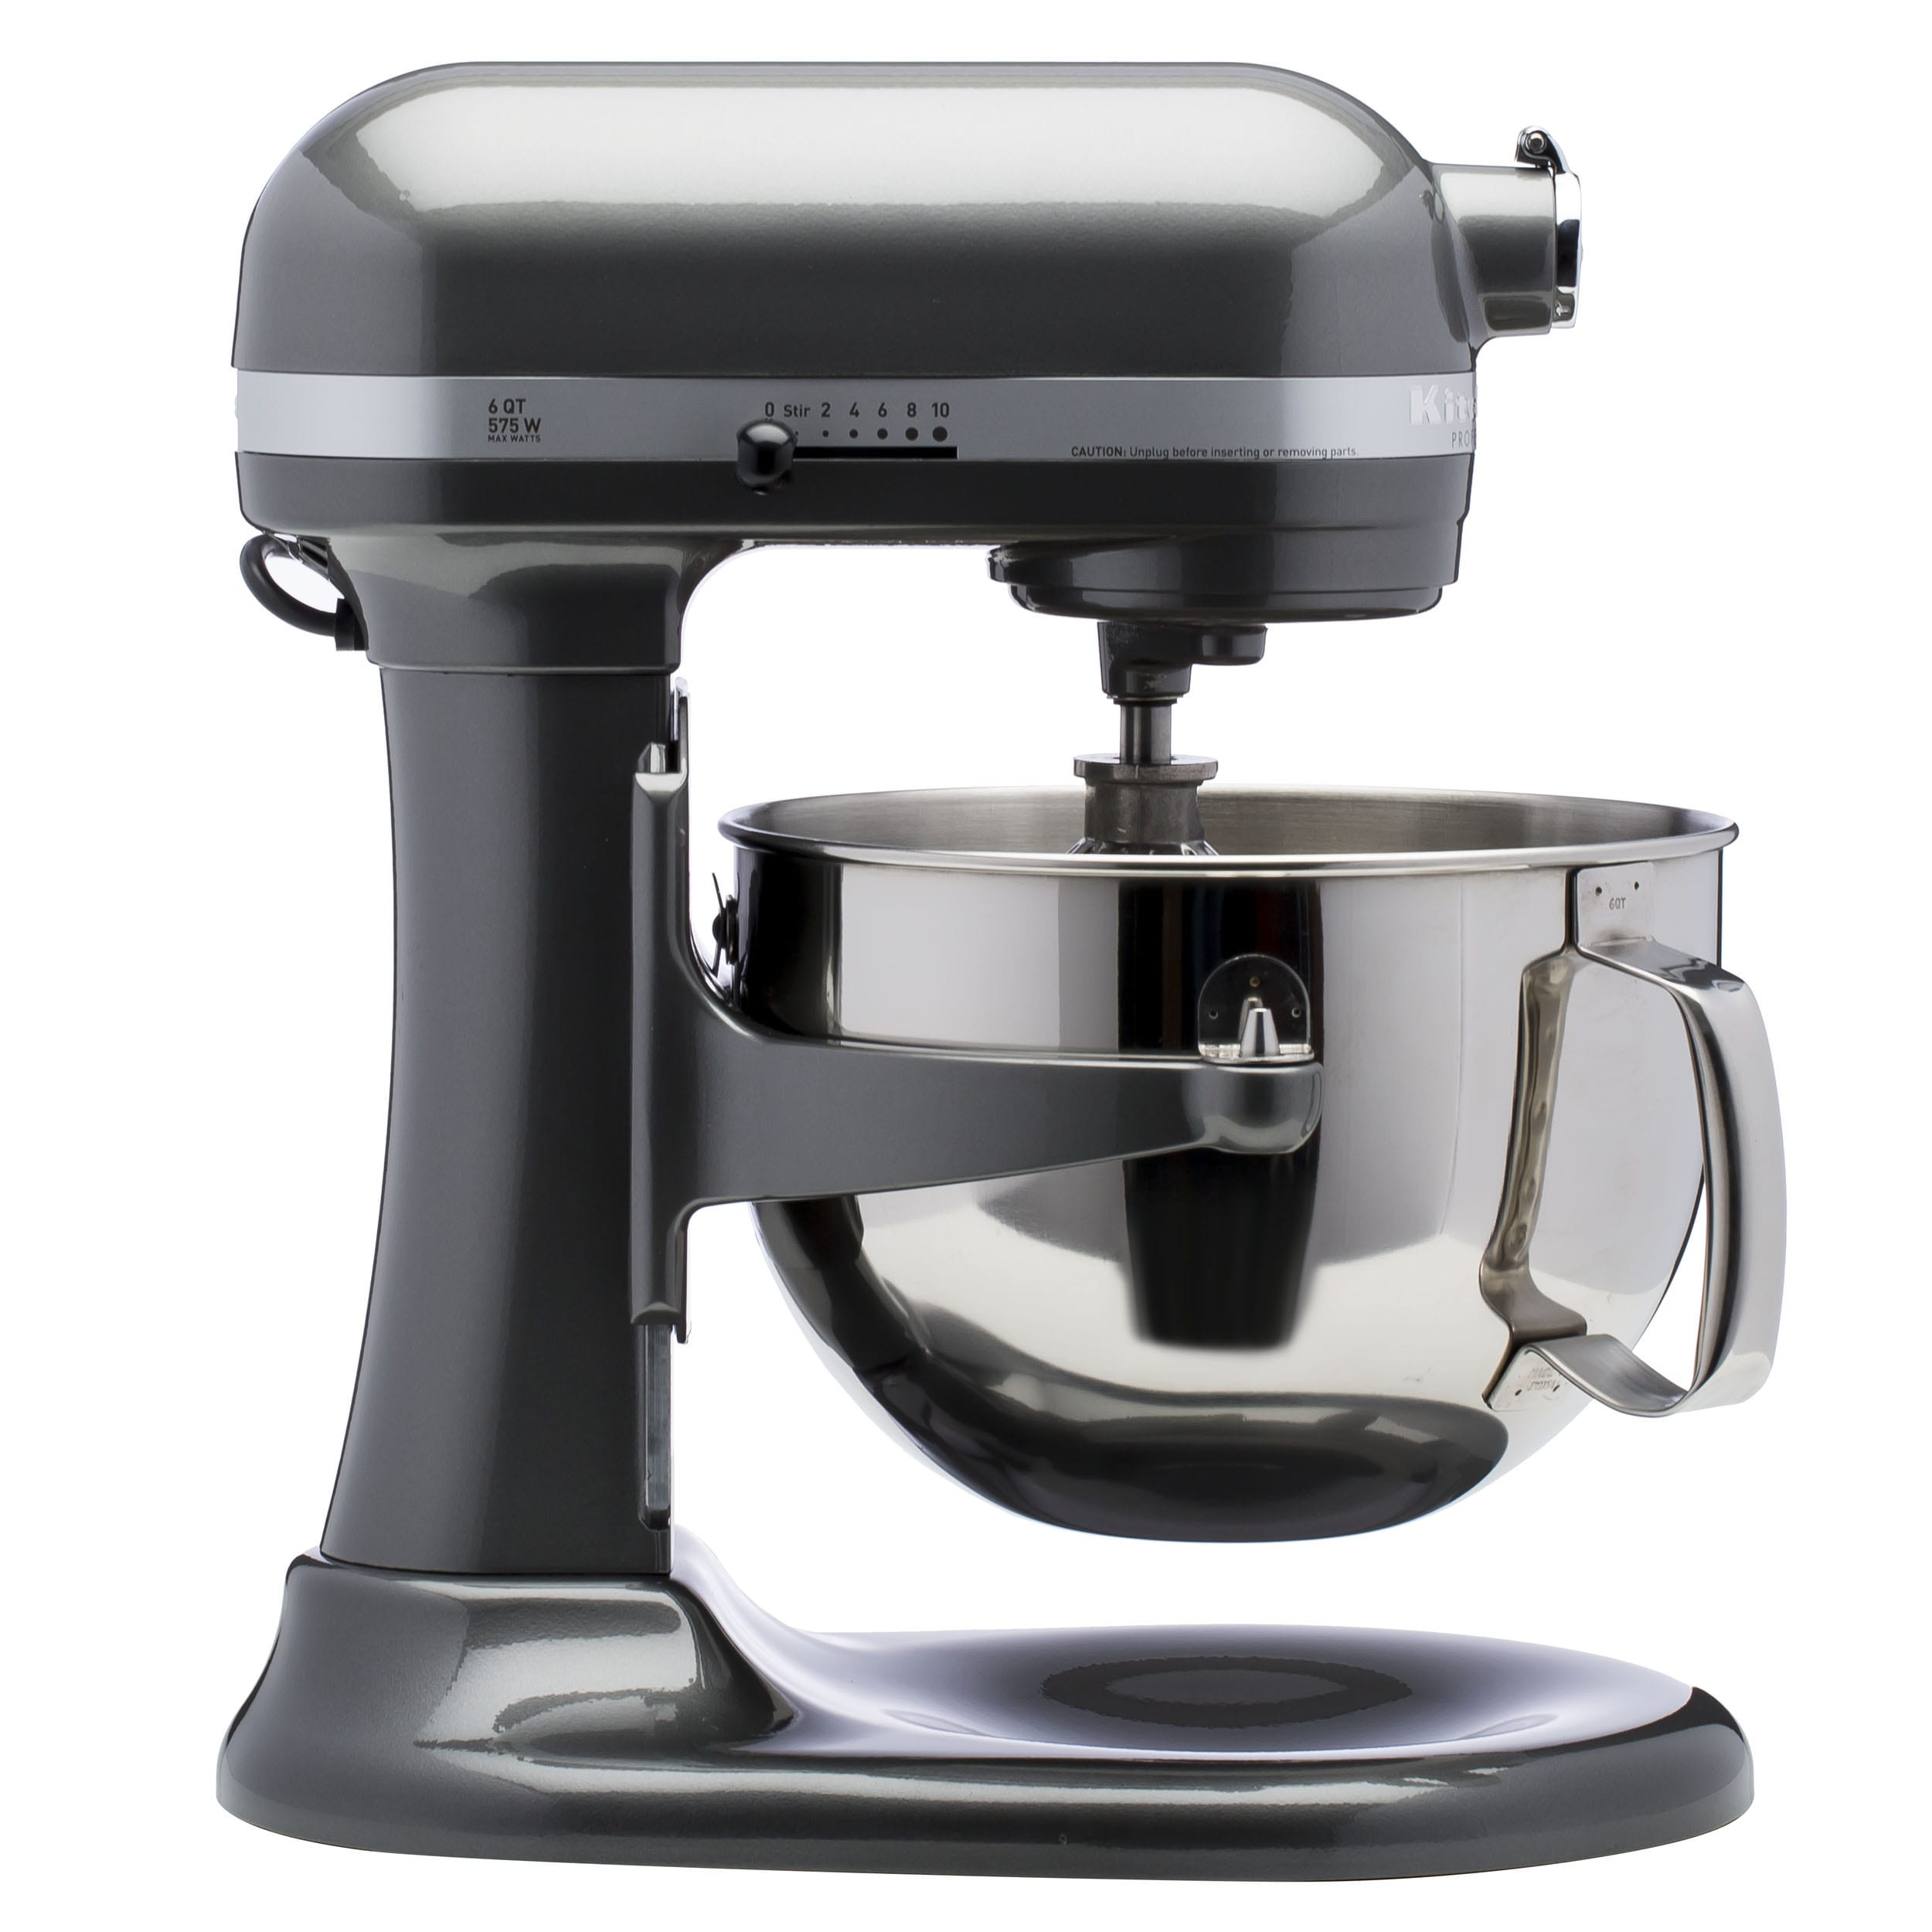 Charmant Shop KitchenAid RKP26M1XPM Pearl Metallic 6 Quart Pro 600 Bowl Lift Stand  Mixer (Refurbished)   Free Shipping Today   Overstock.com   5274830